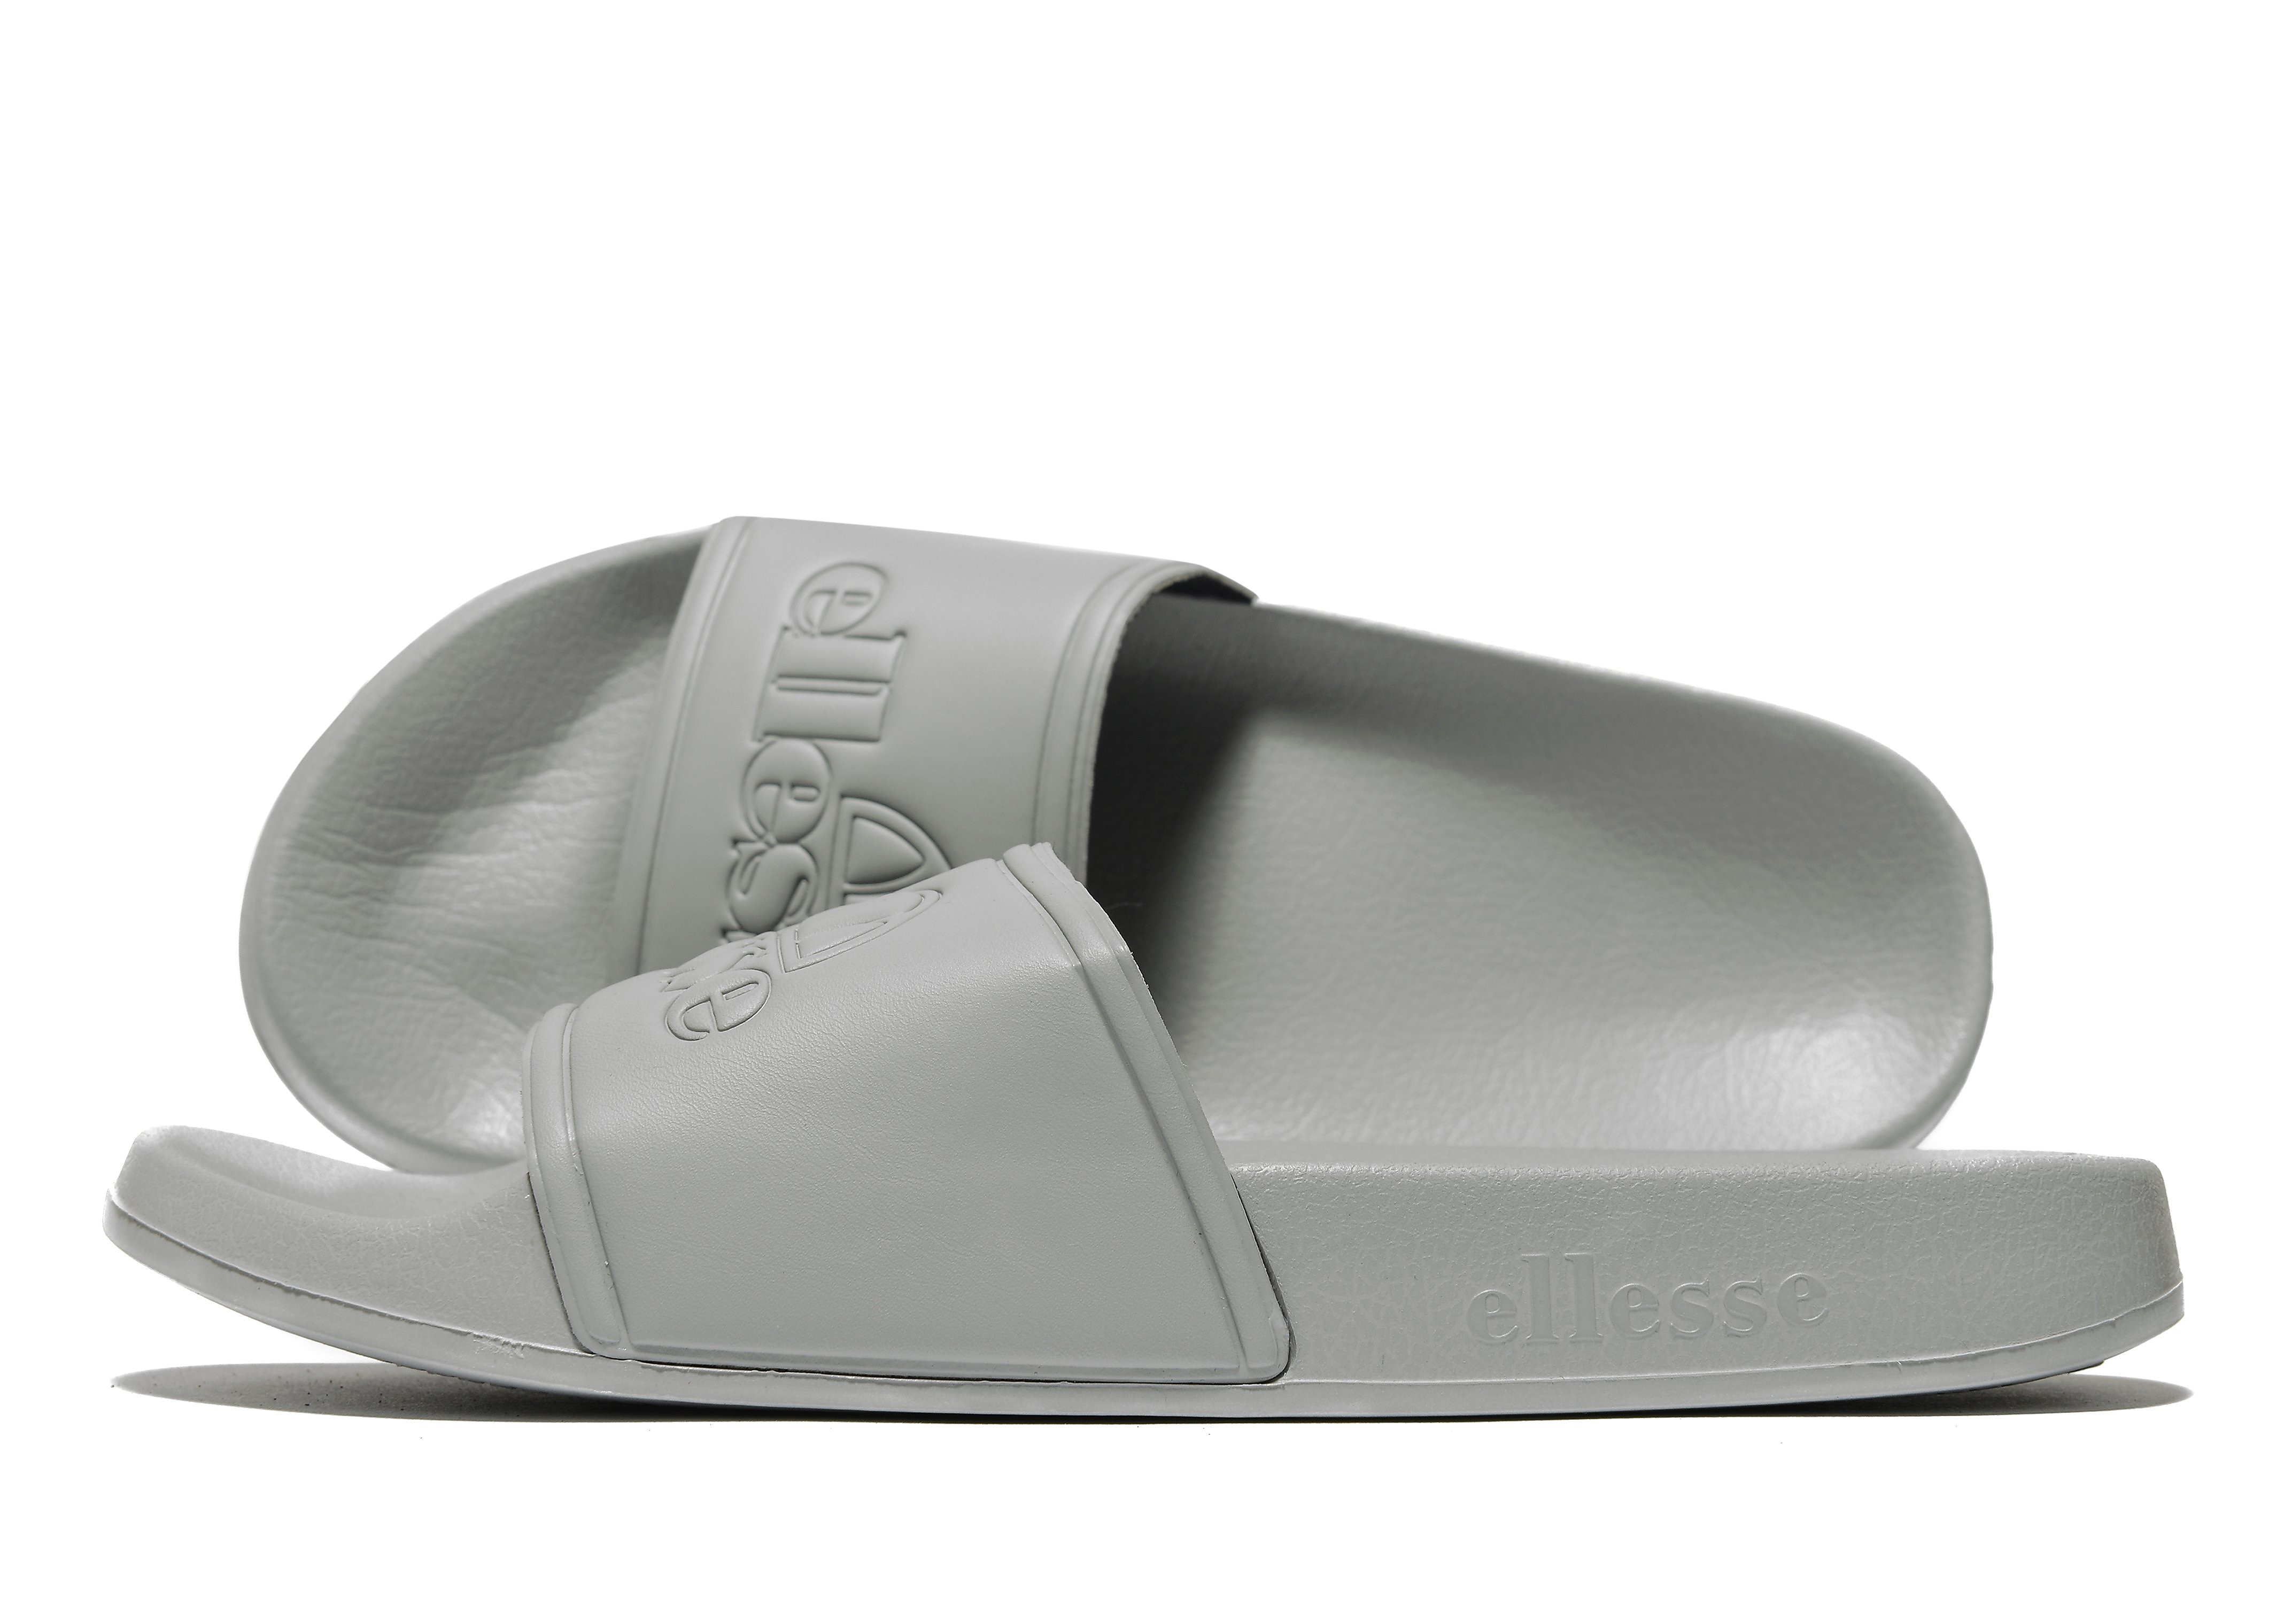 Ellesse Fillipo Slide Women's